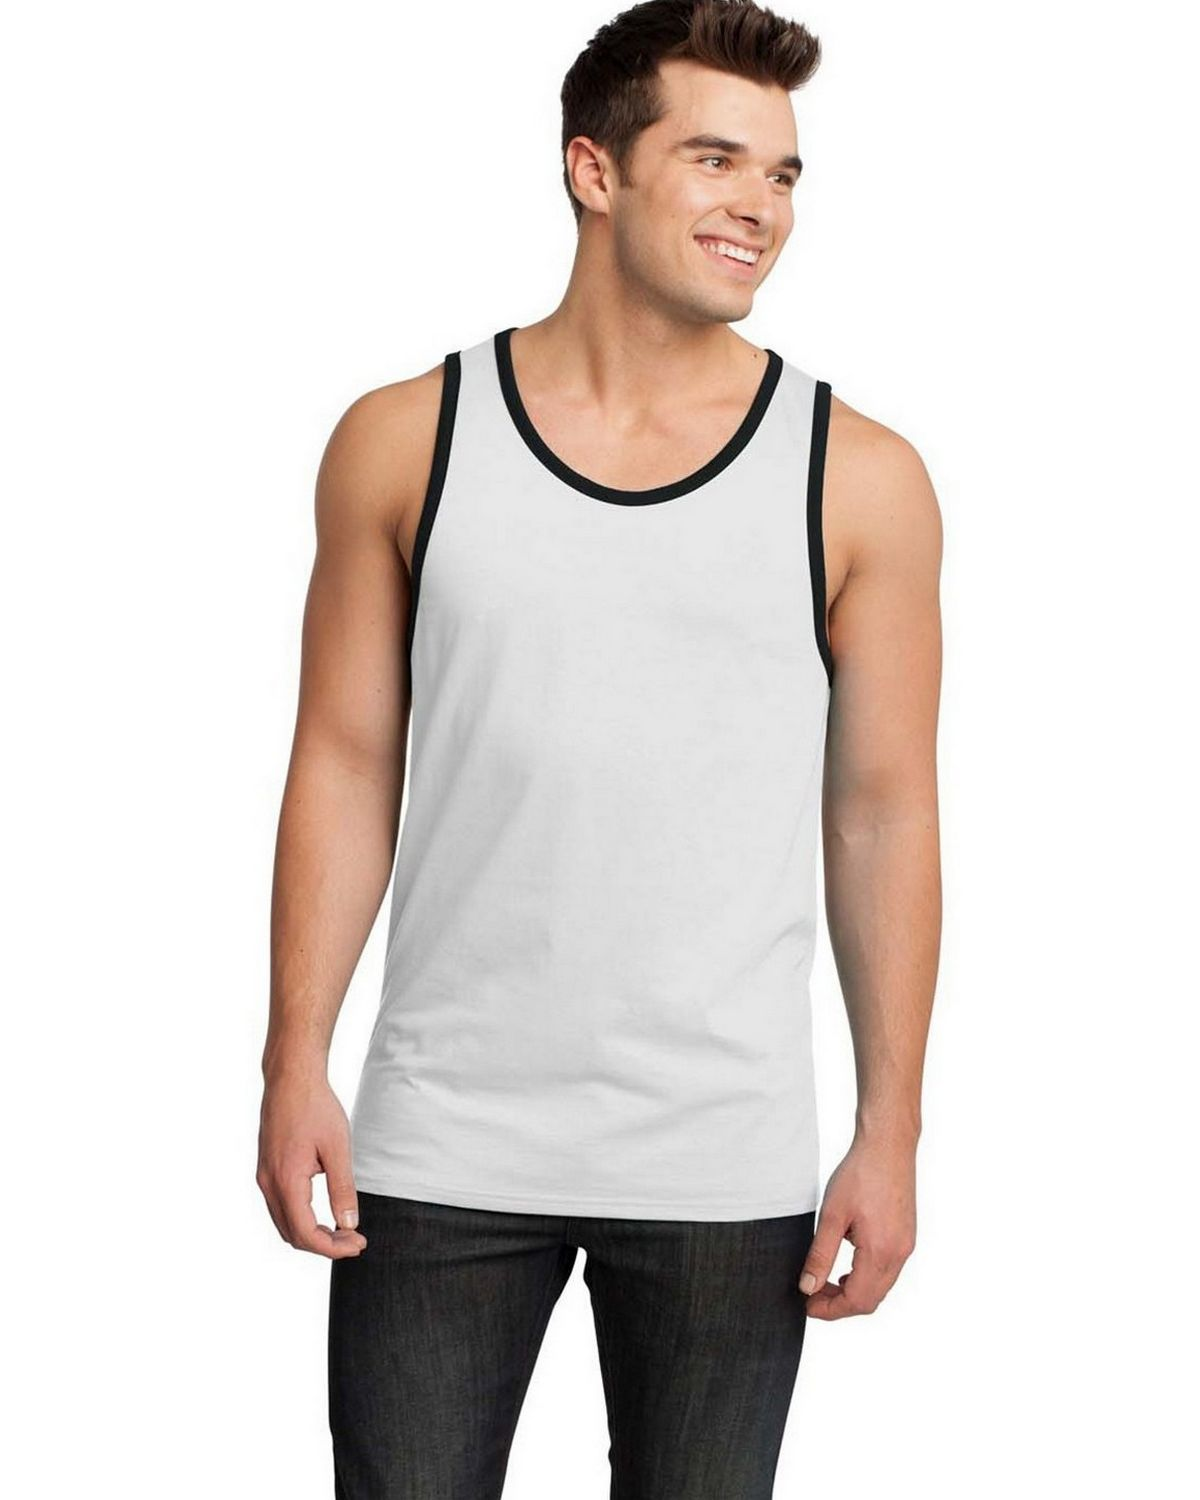 District DT1500 Mens Cotton Ringer Tank - New Navy/ Heathered Steel - M DT1500